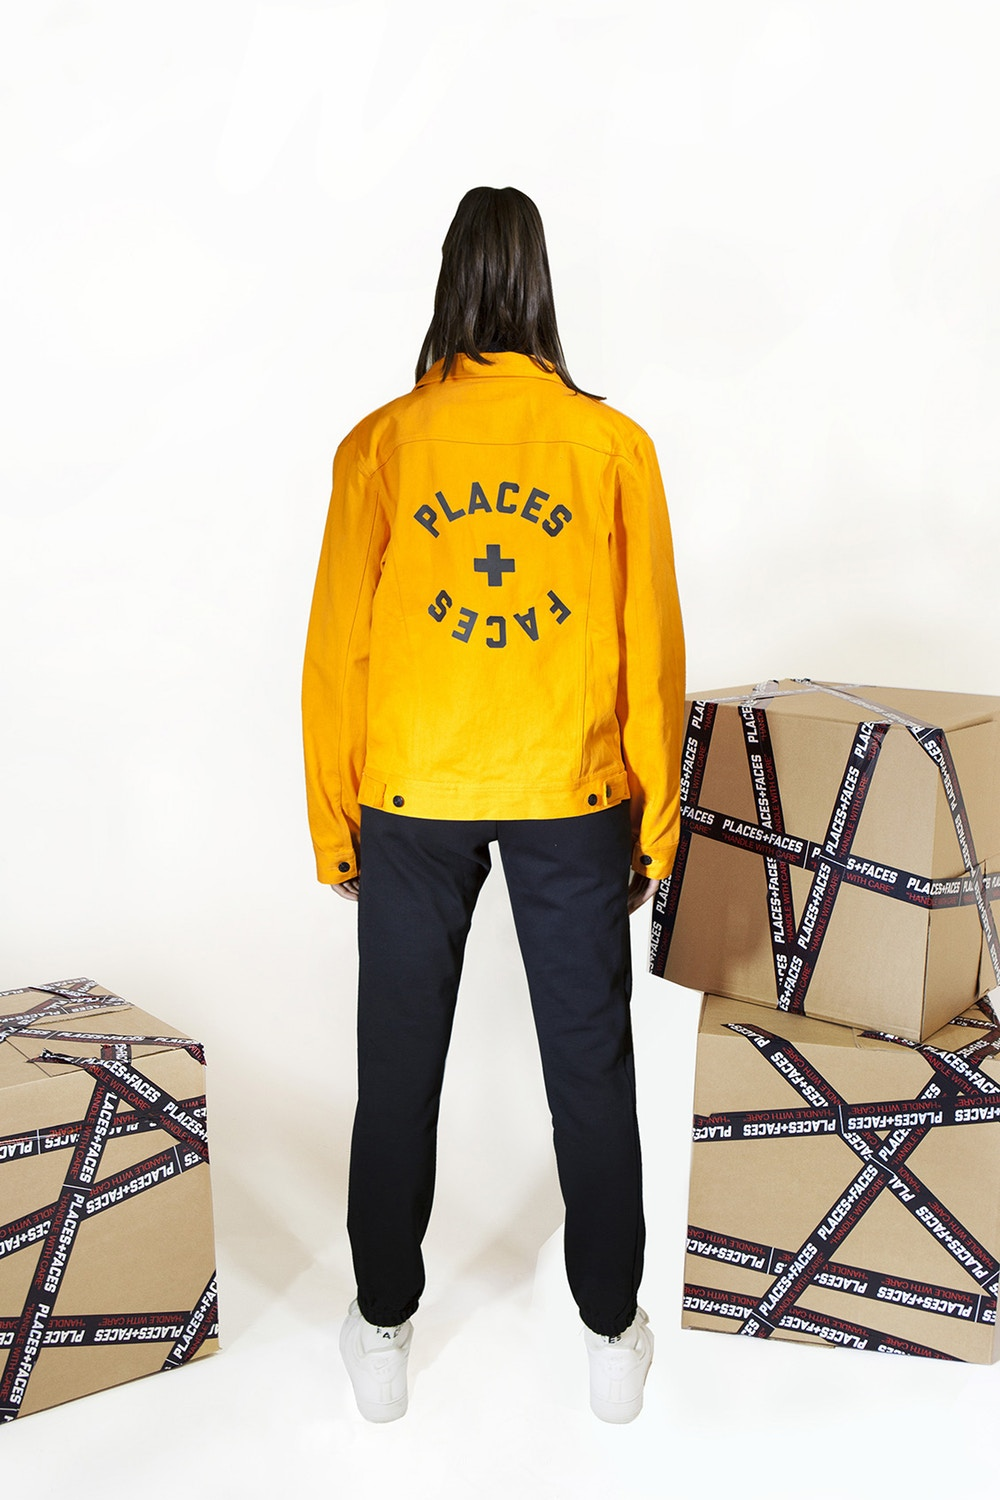 Places+Faces Reveals New Lookbook Collection